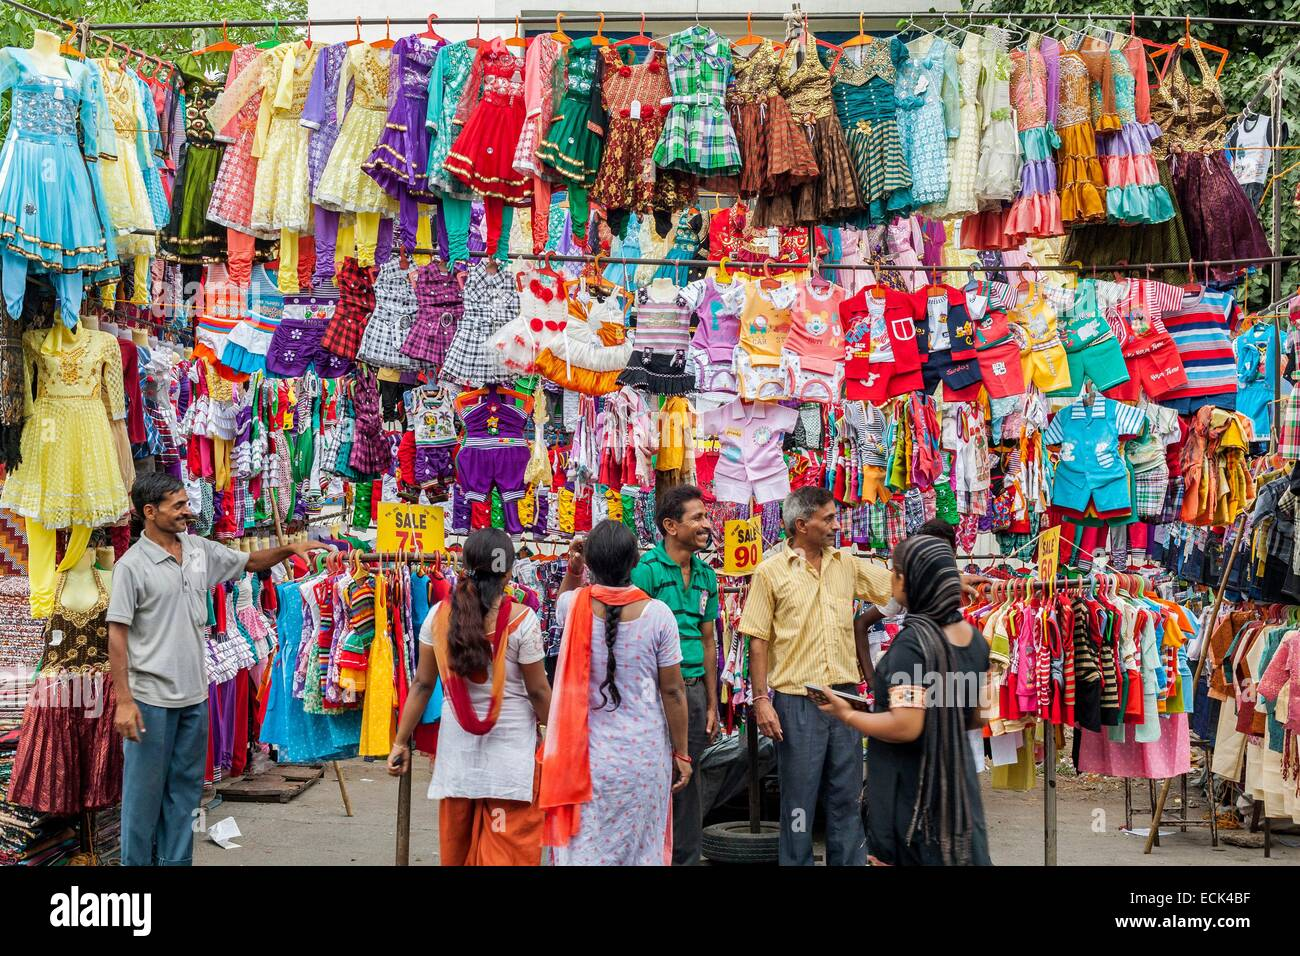 India New Delhi Saket District Saket Market Seller Of Children 39 S Stock Photo 76637891 Alamy